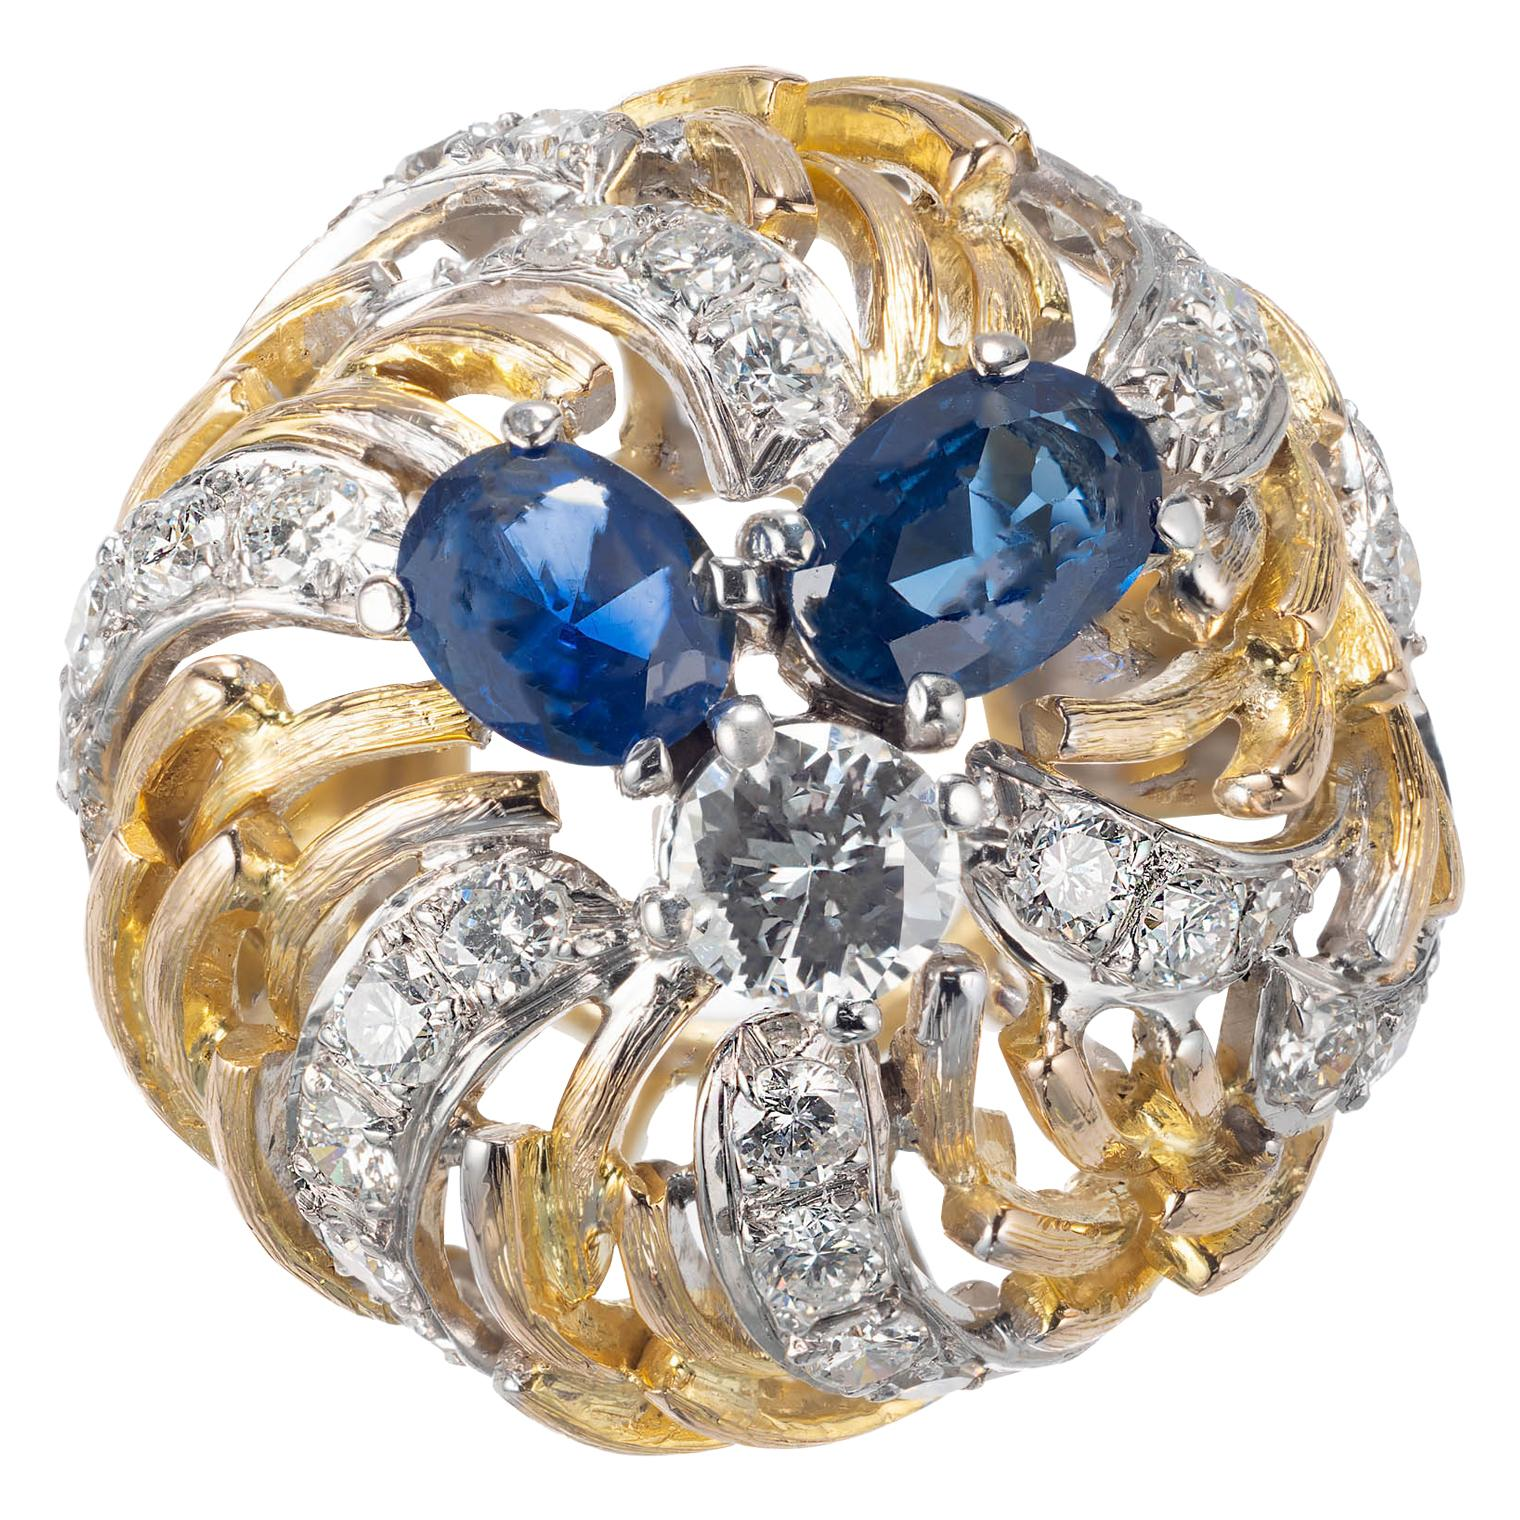 1.41 Carat Sapphire Diamond Gold Open Dome Cocktail Ring